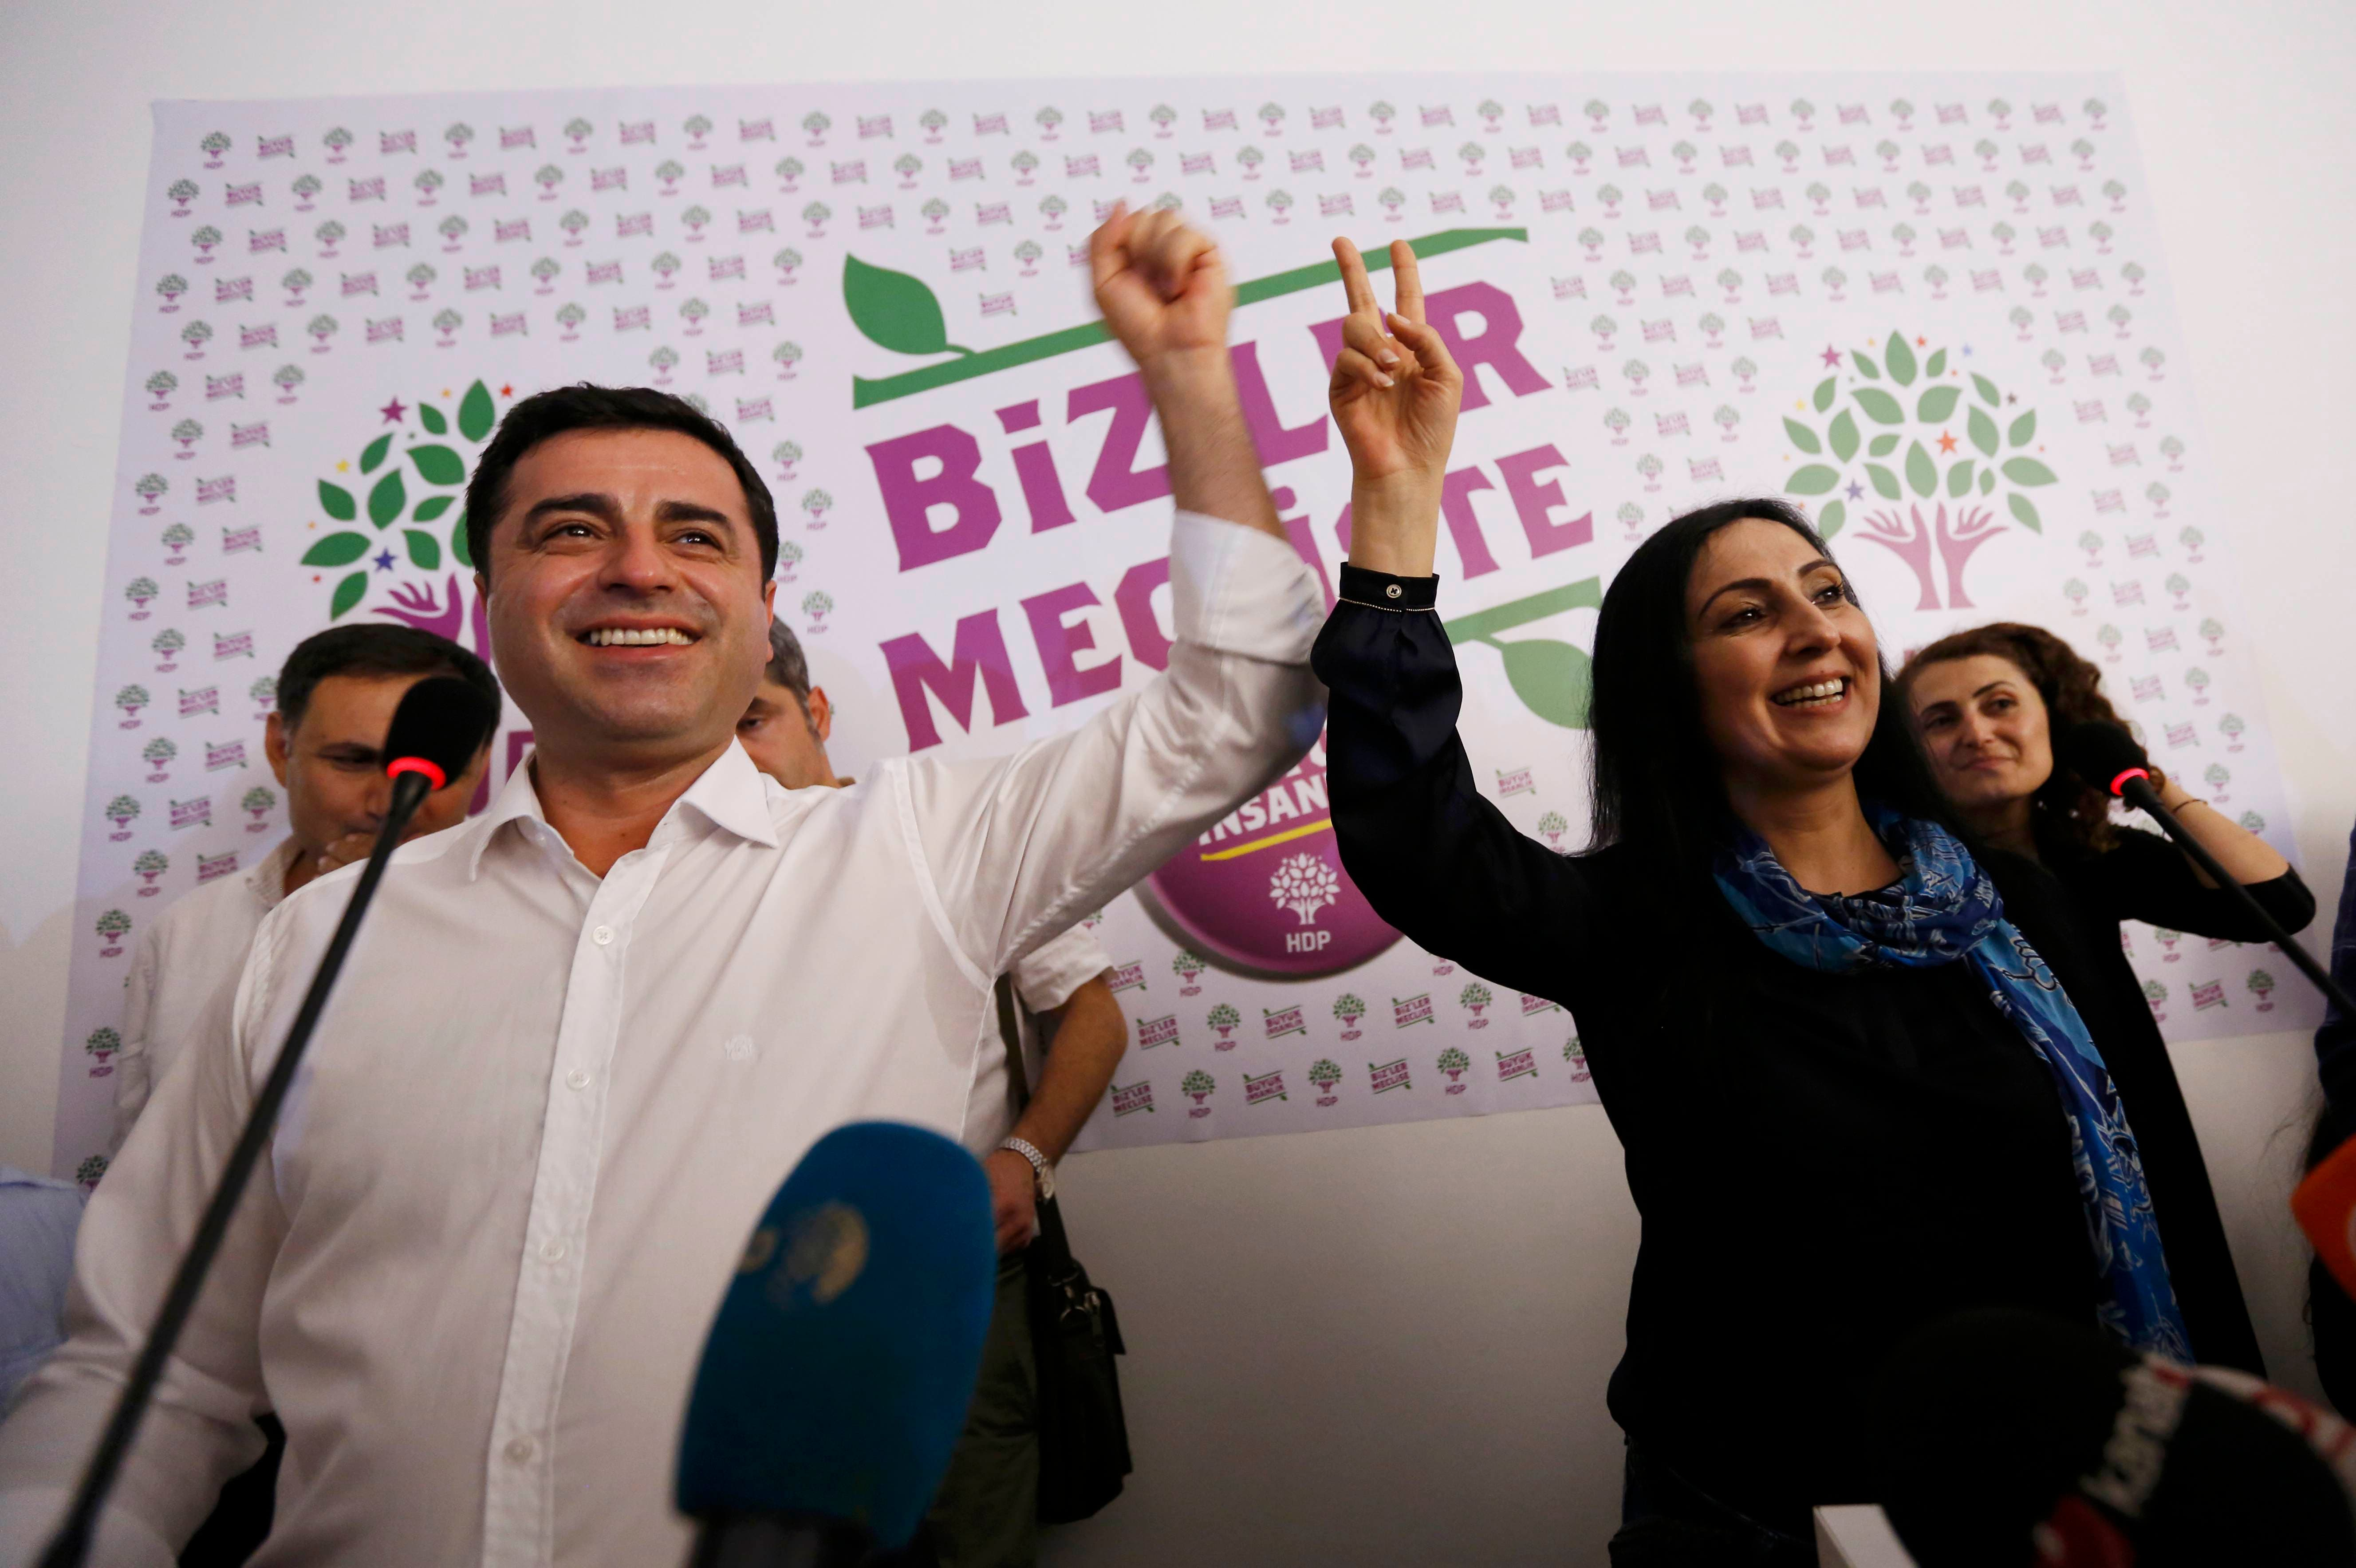 Co-chairs of the pro-Kurdish Peoples' Democratic Party (HDP), Selahattin Demirtas (L) and Figen Yuksekdag celebrate inside party's headquarters in Istanbul, Turkey, June 7, 2015. (Reuters)